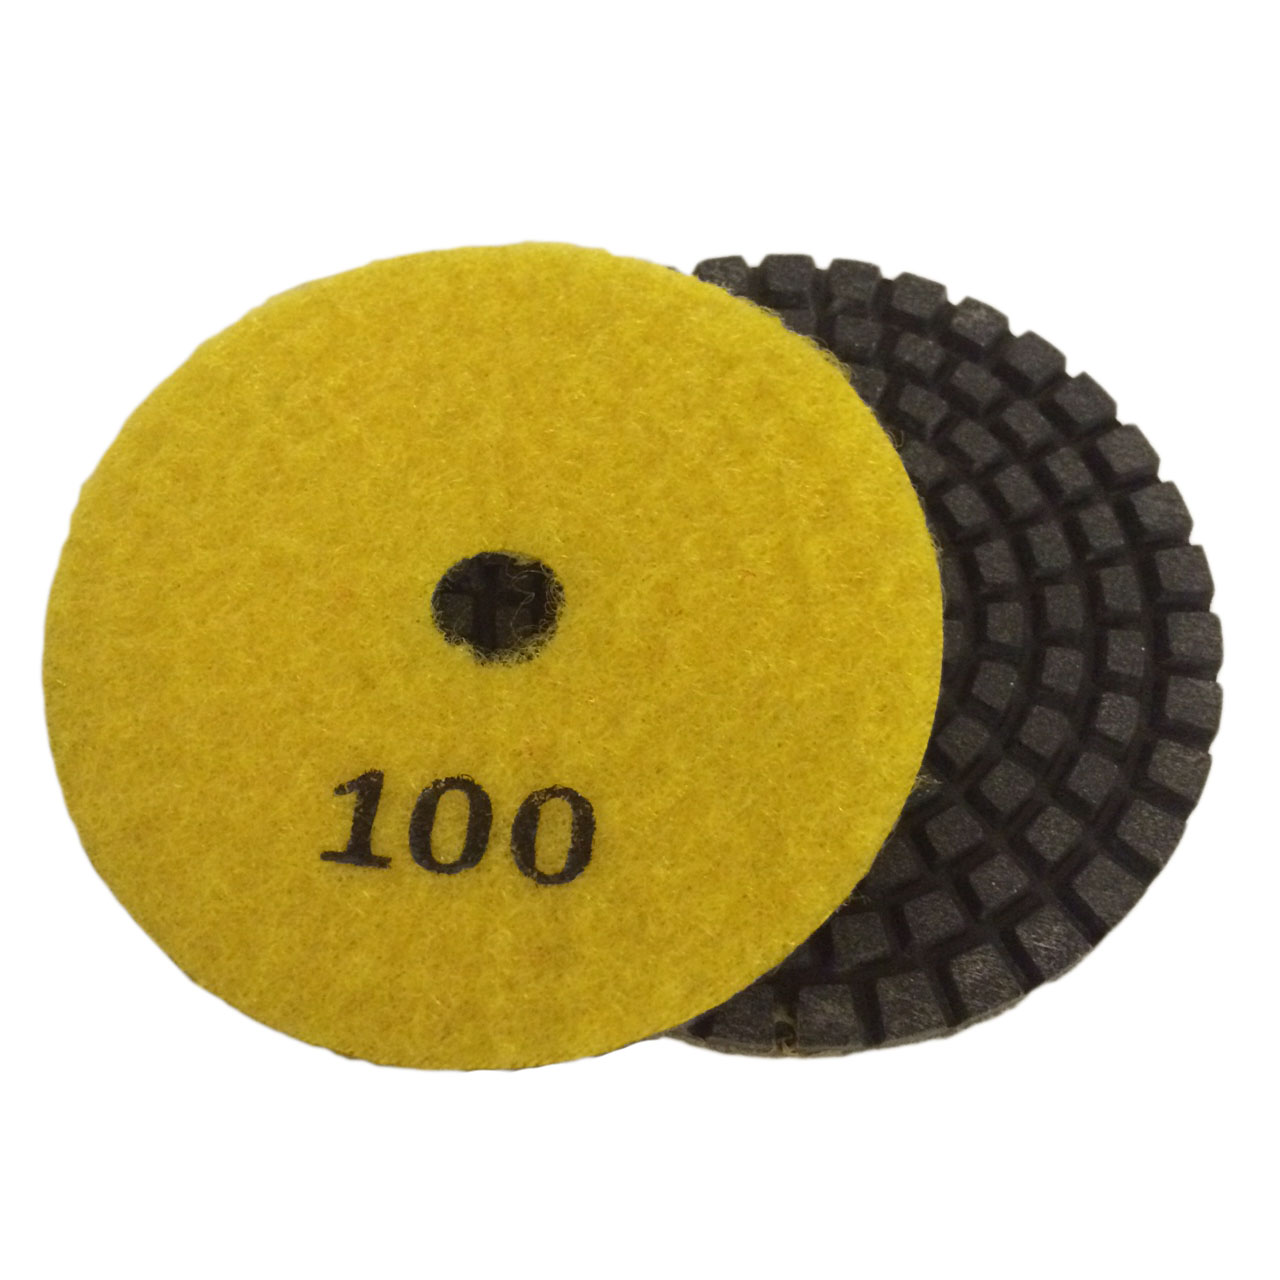 3 Inch 100 Grit Diamond Disc to fit a Flex Angle Grinder